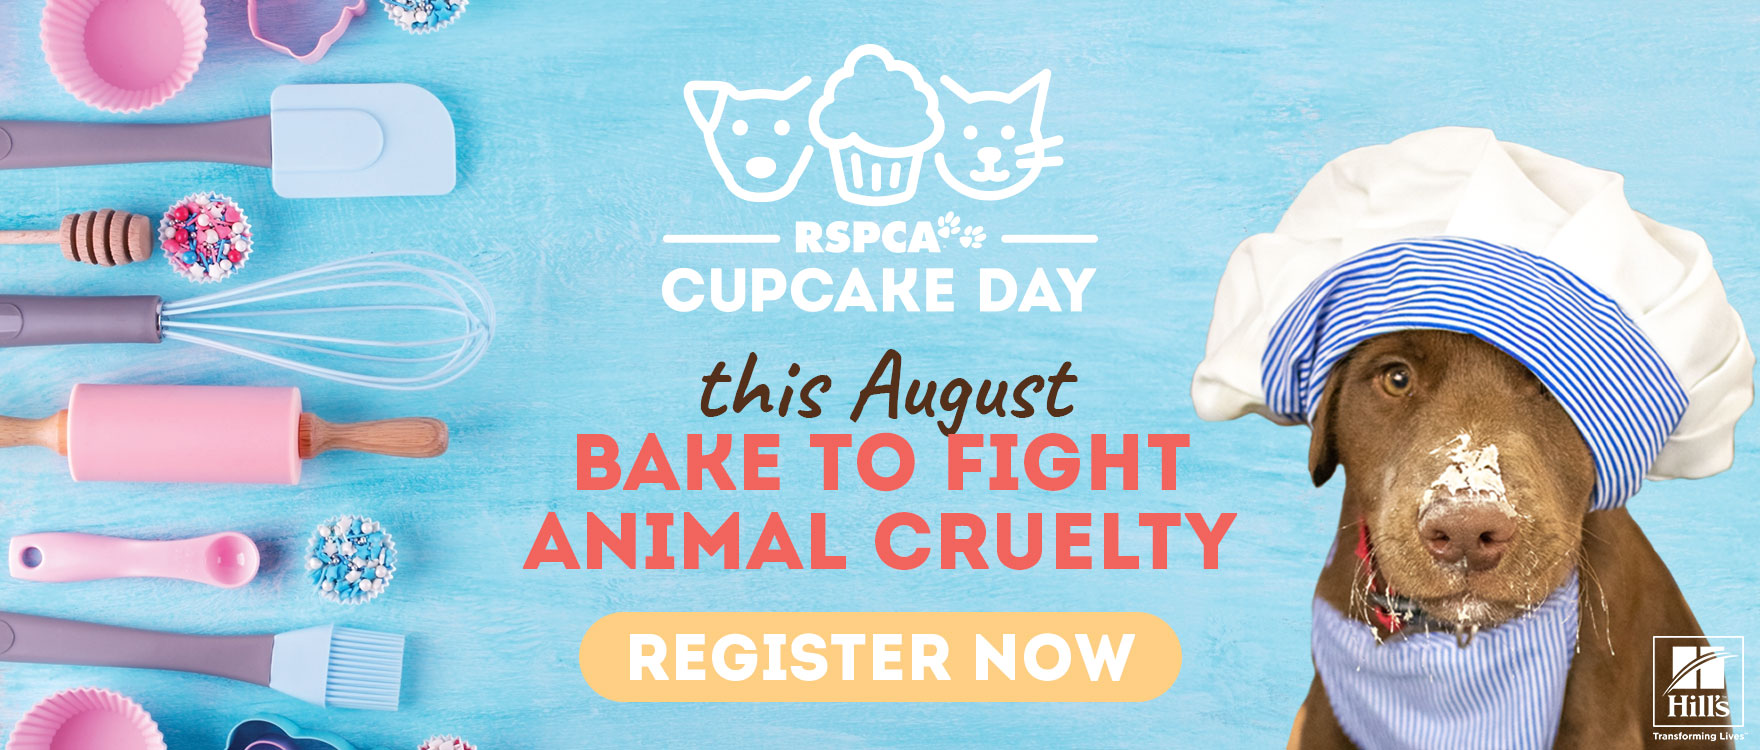 Bake for change - Register for Cupcake Day Now!